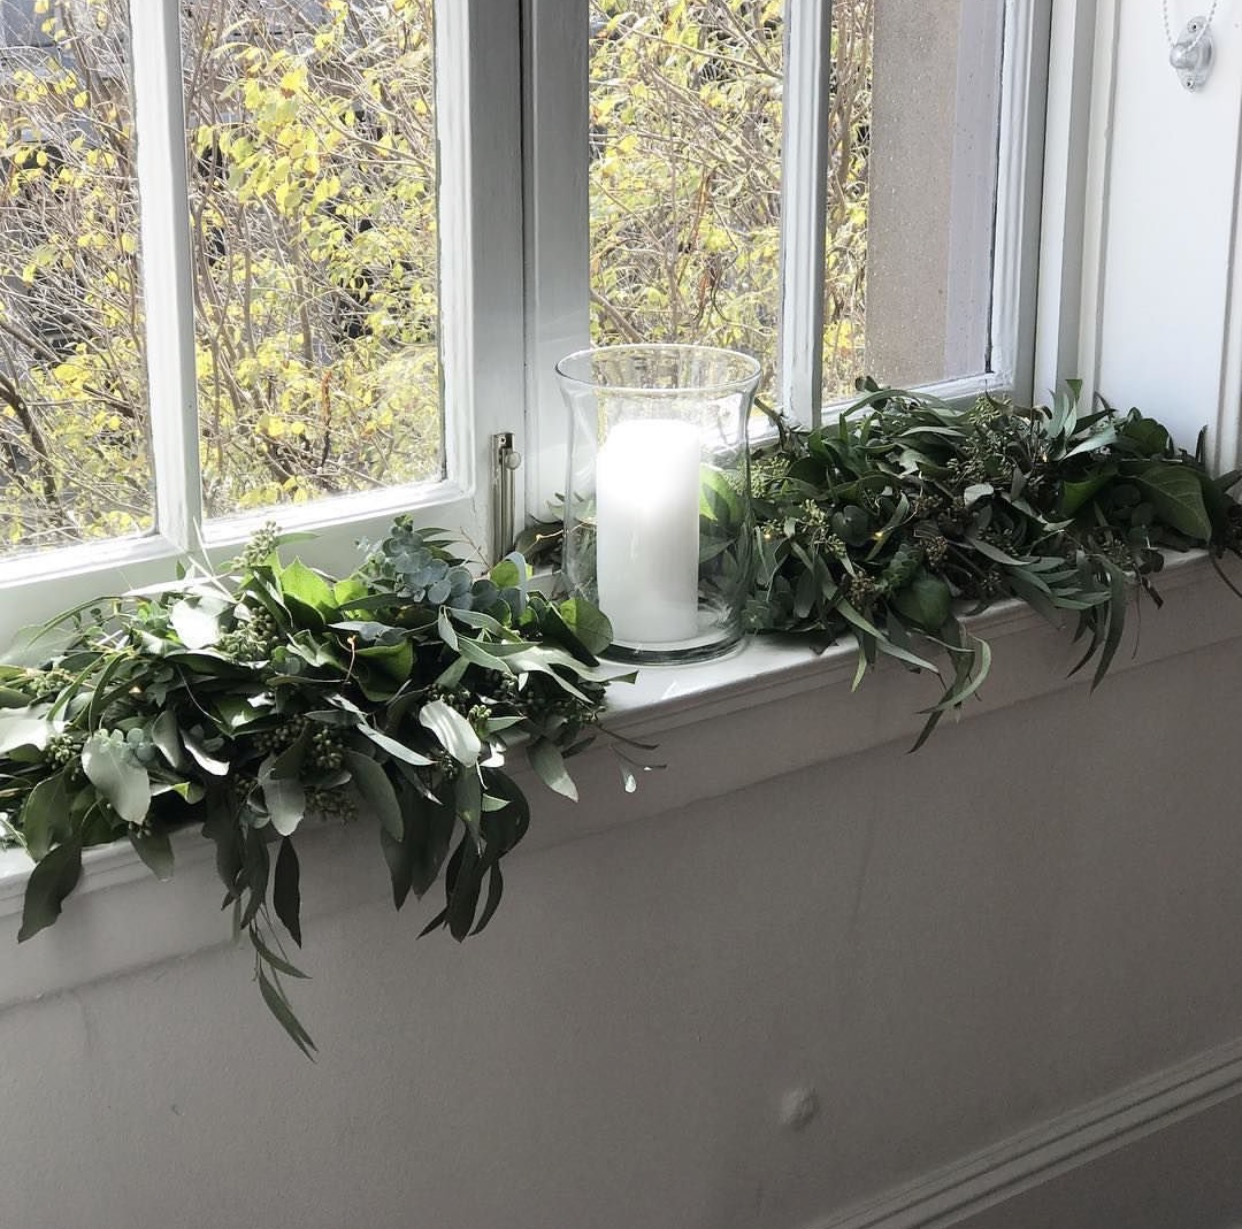 lush winter garlands in the window #Lrqcfloral #floralgarlands